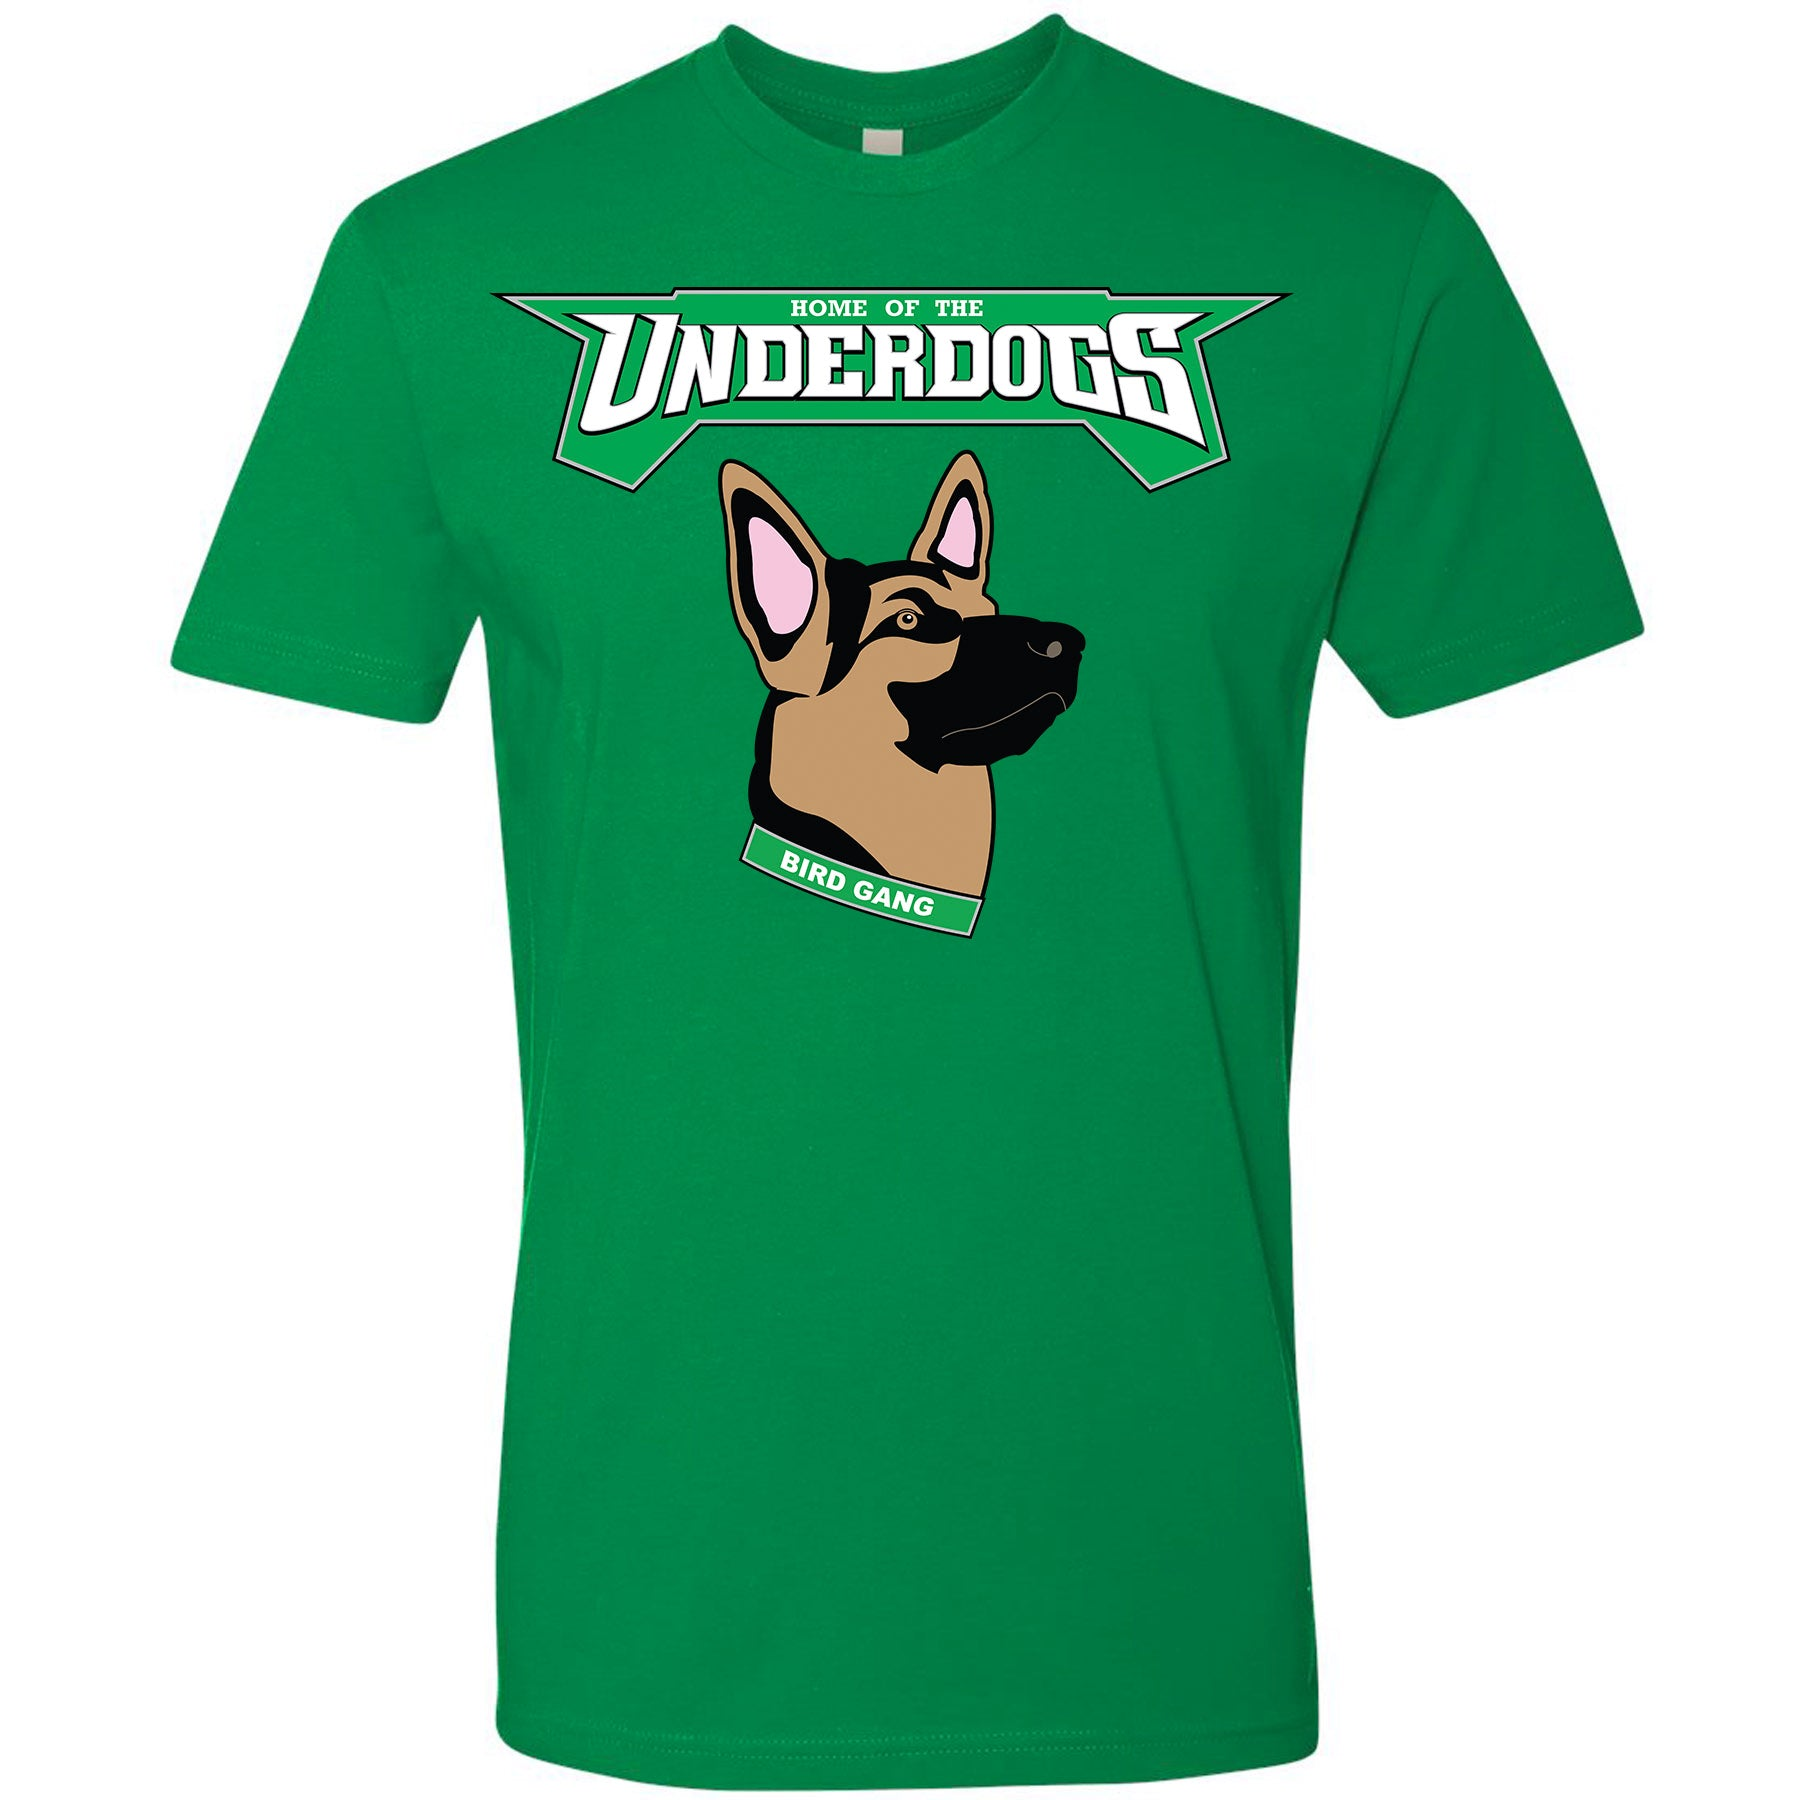 a5318b68842 let's go eagles! the philadelphia eagles underdogs t-shirt says the word  underdogs printed